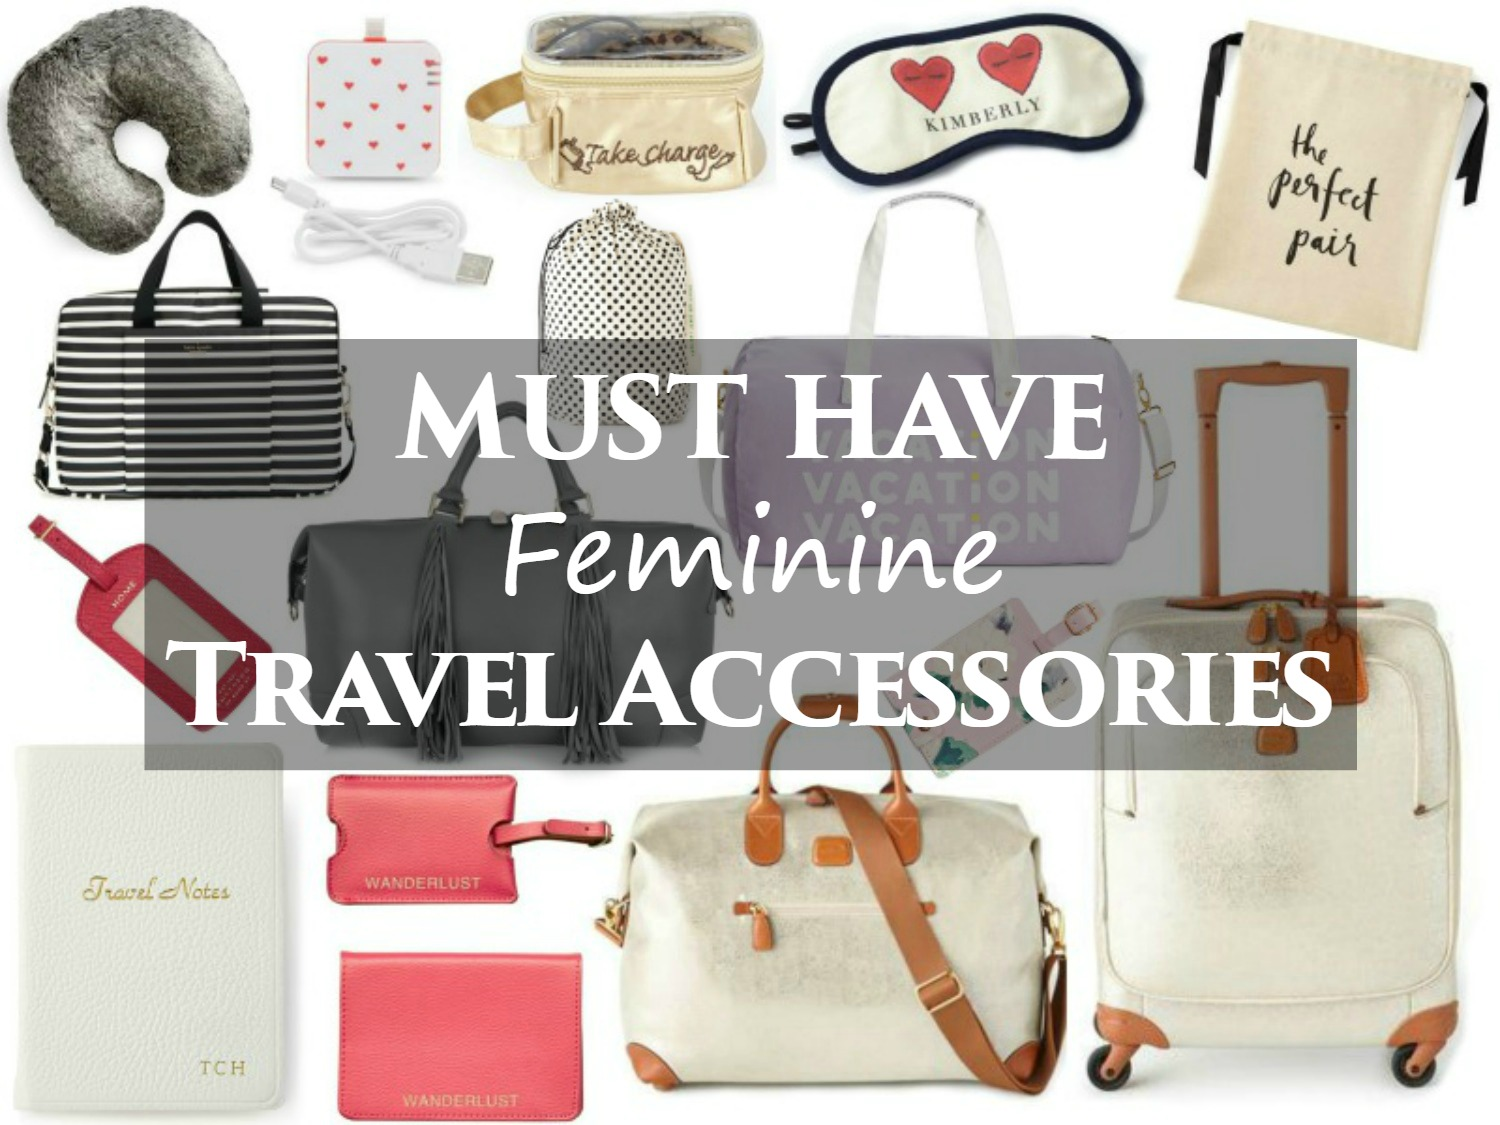 MUST HAVE FEMININE TRAVEL ACCESSORIES.jpg